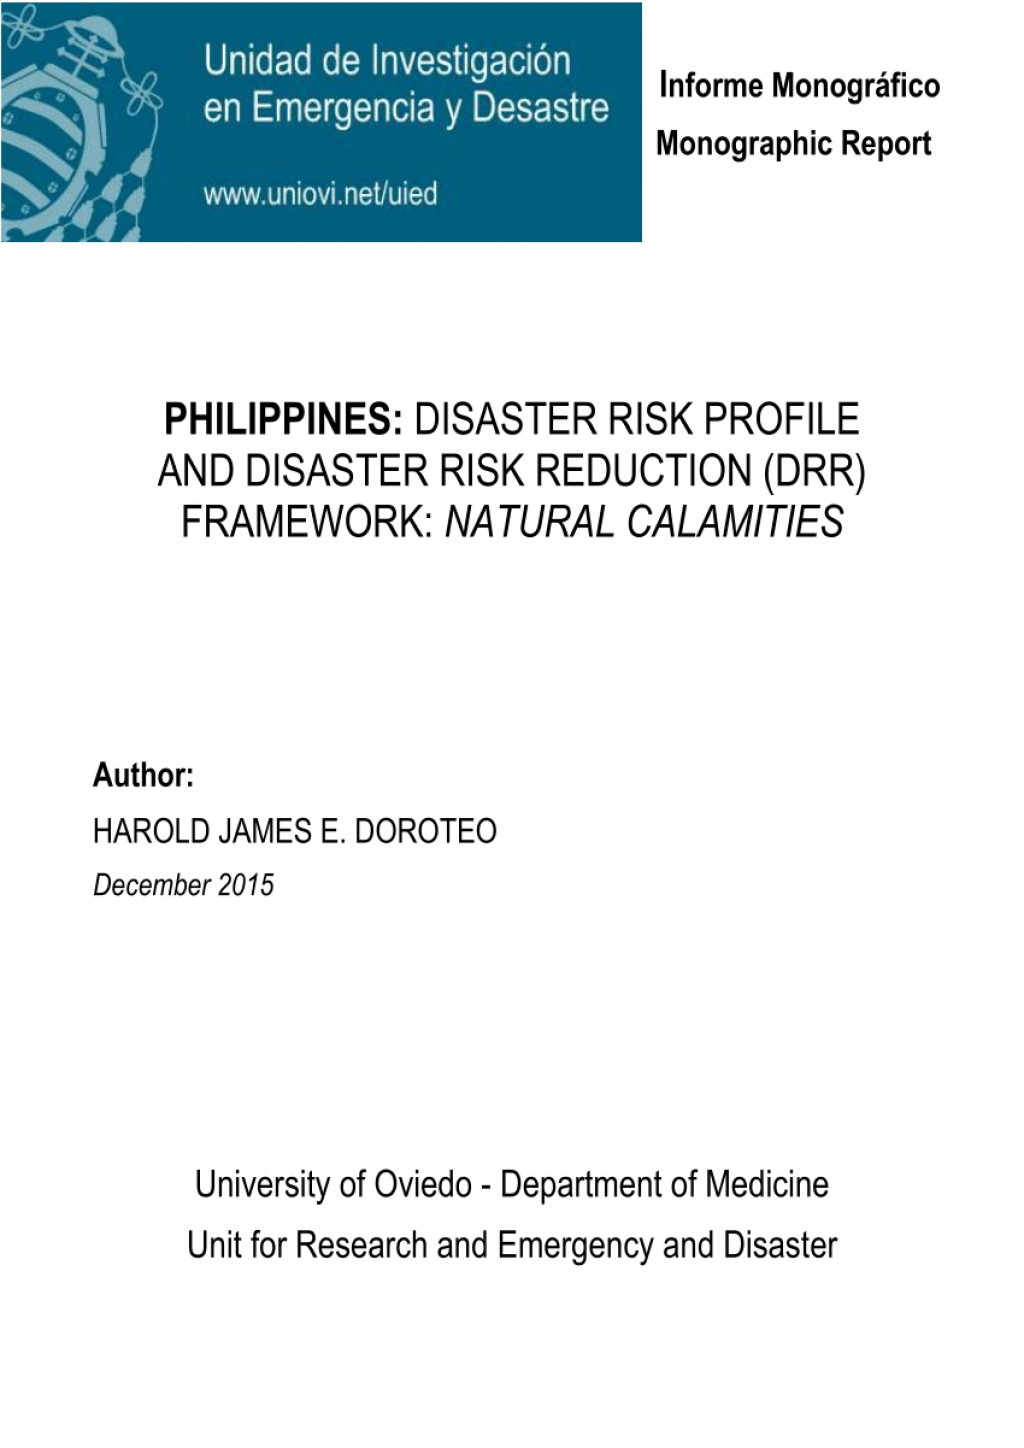 009 Earthquake Research Paper Pdf Philippines Wondrous Large